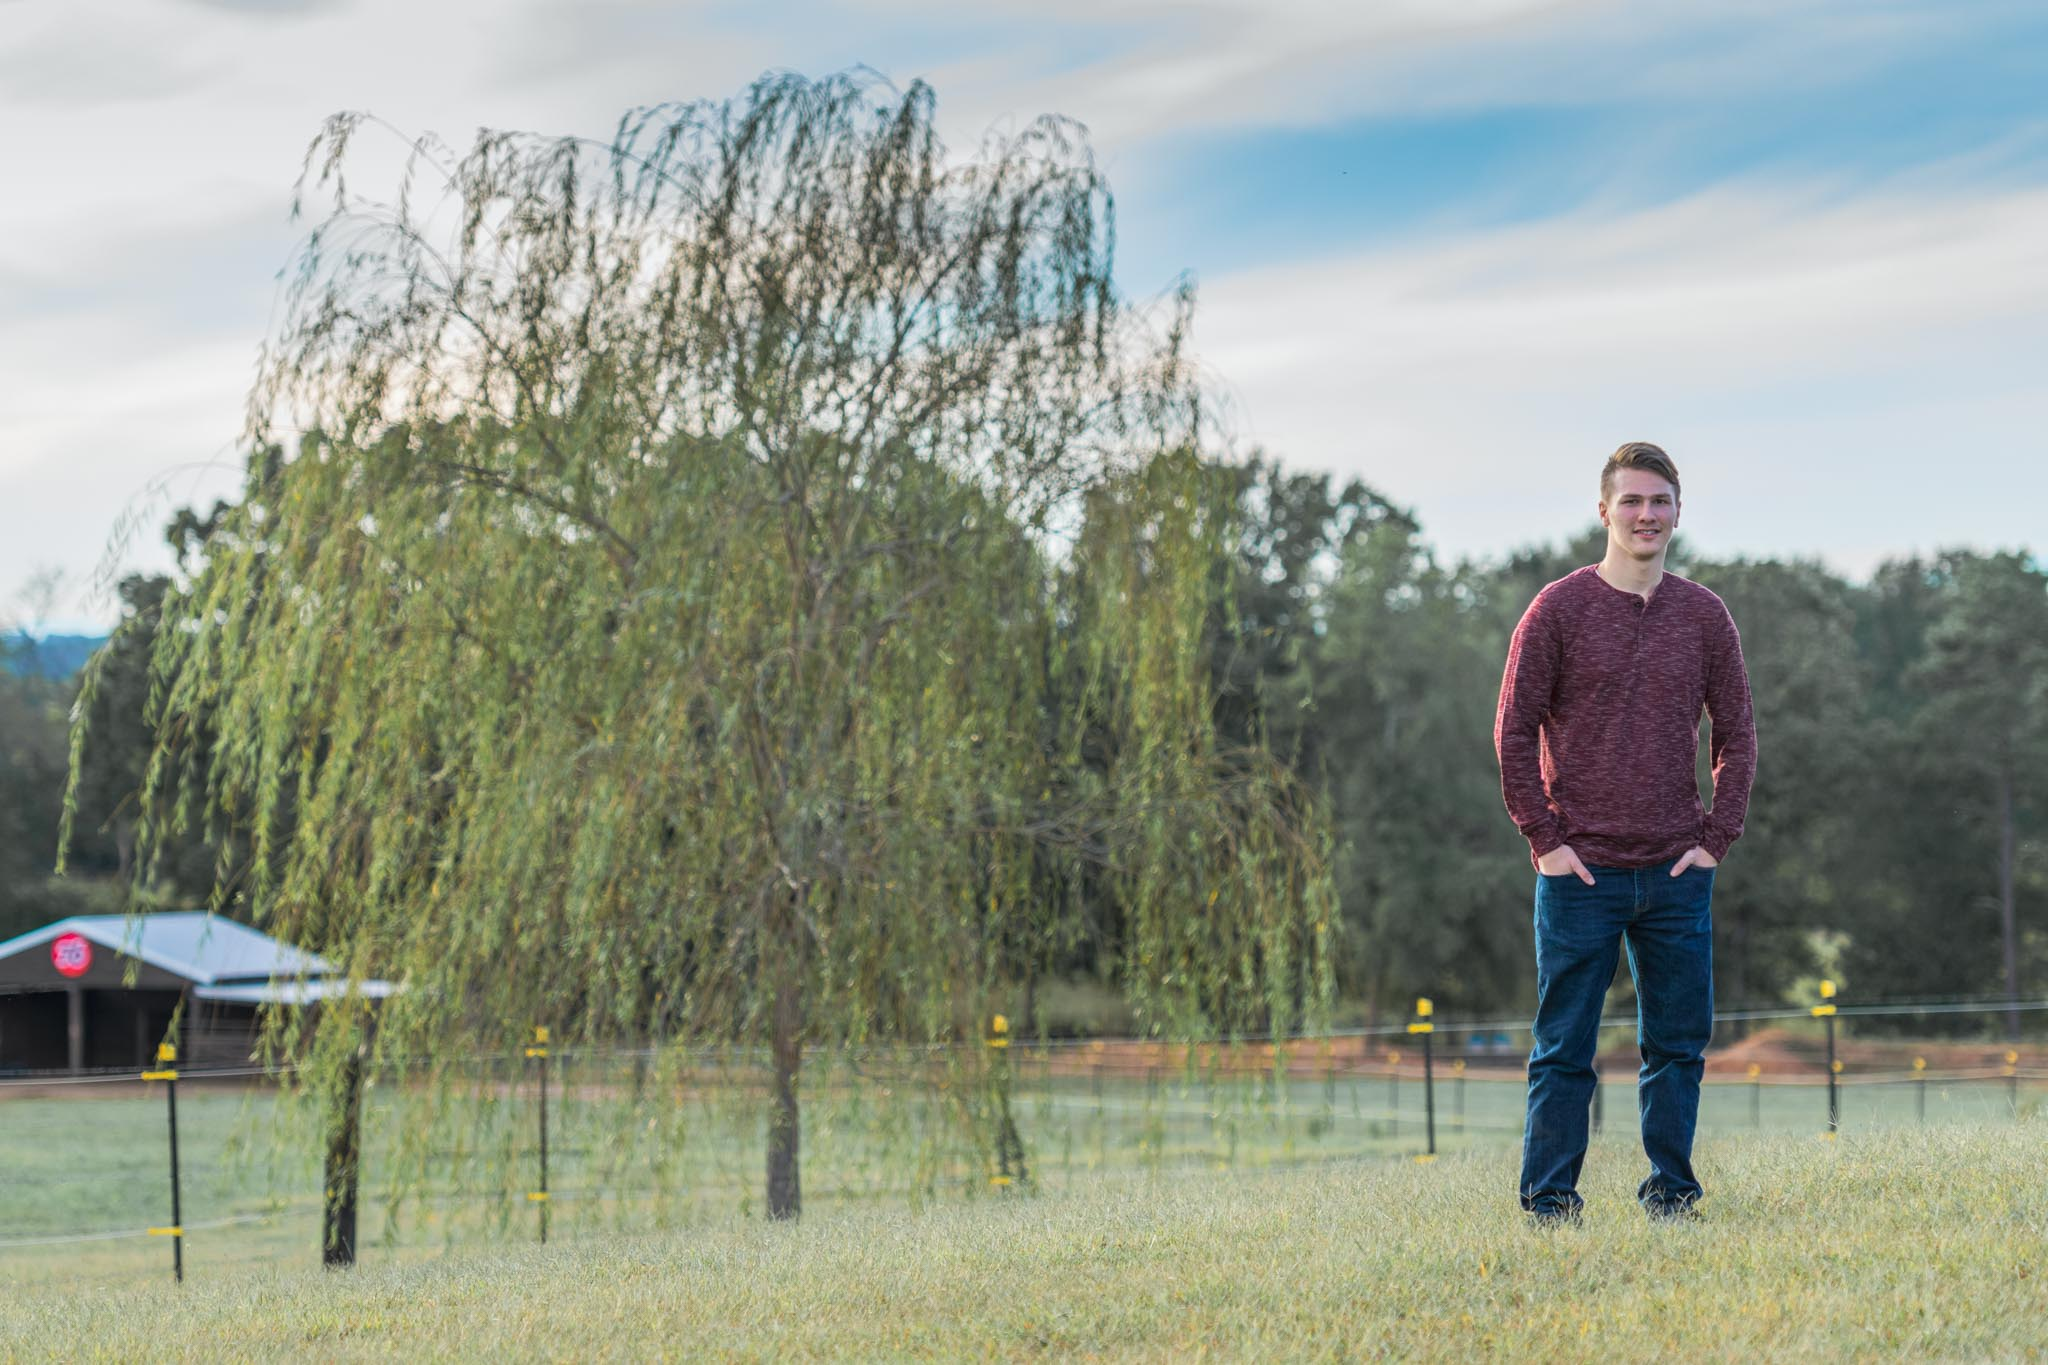 D&B Forever Photography Greenville Senior Photographer that values who you are. Step out of the ordinary, and let's get your ultimate senior photos!